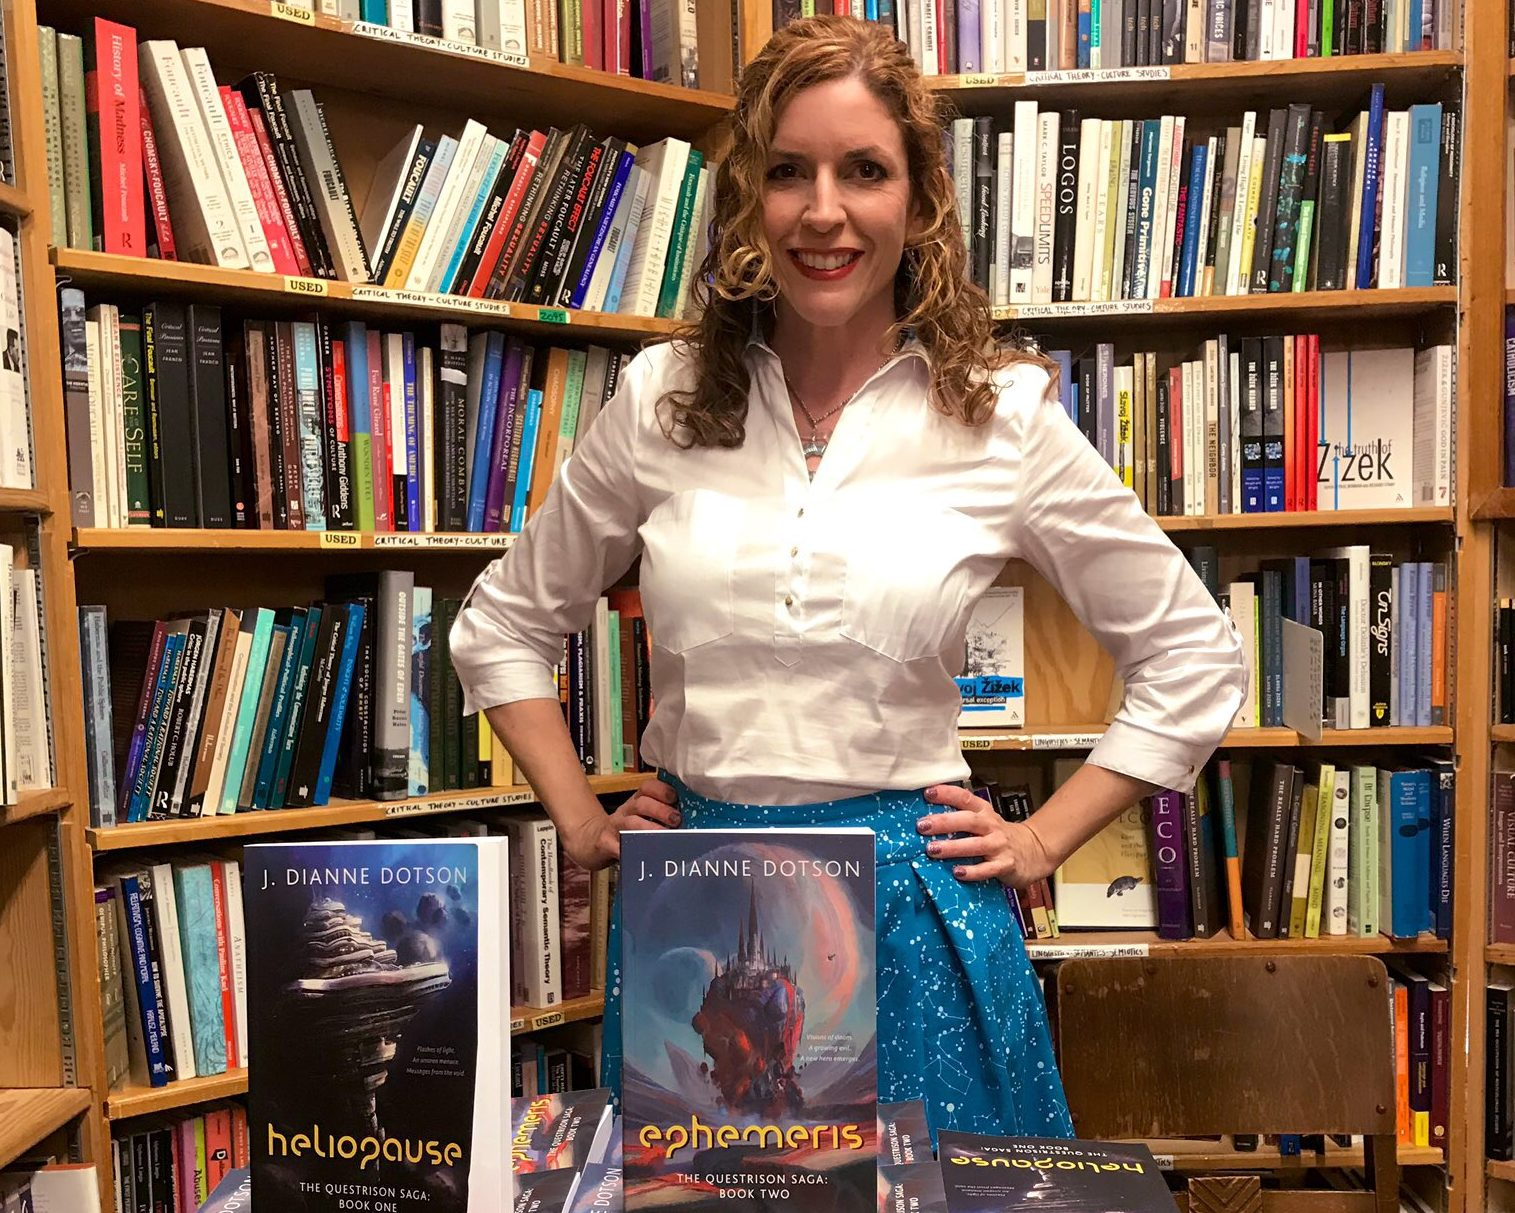 J. Dianne Dotson – Science Fiction and Fantasy Writer – My San Francisco Book Signing